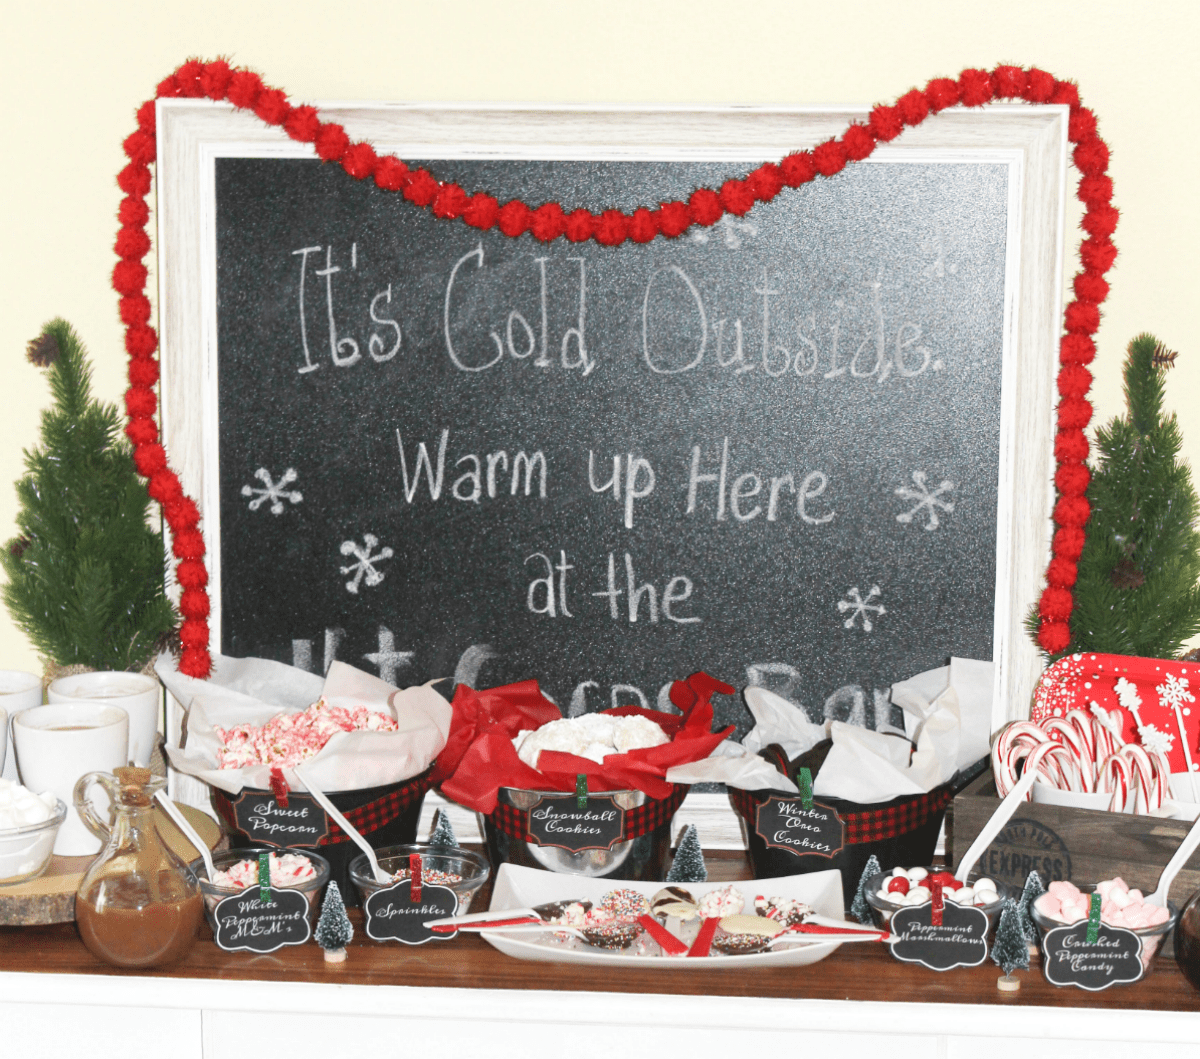 hot-cocoa-bar-with-all-kinds-of-goodies